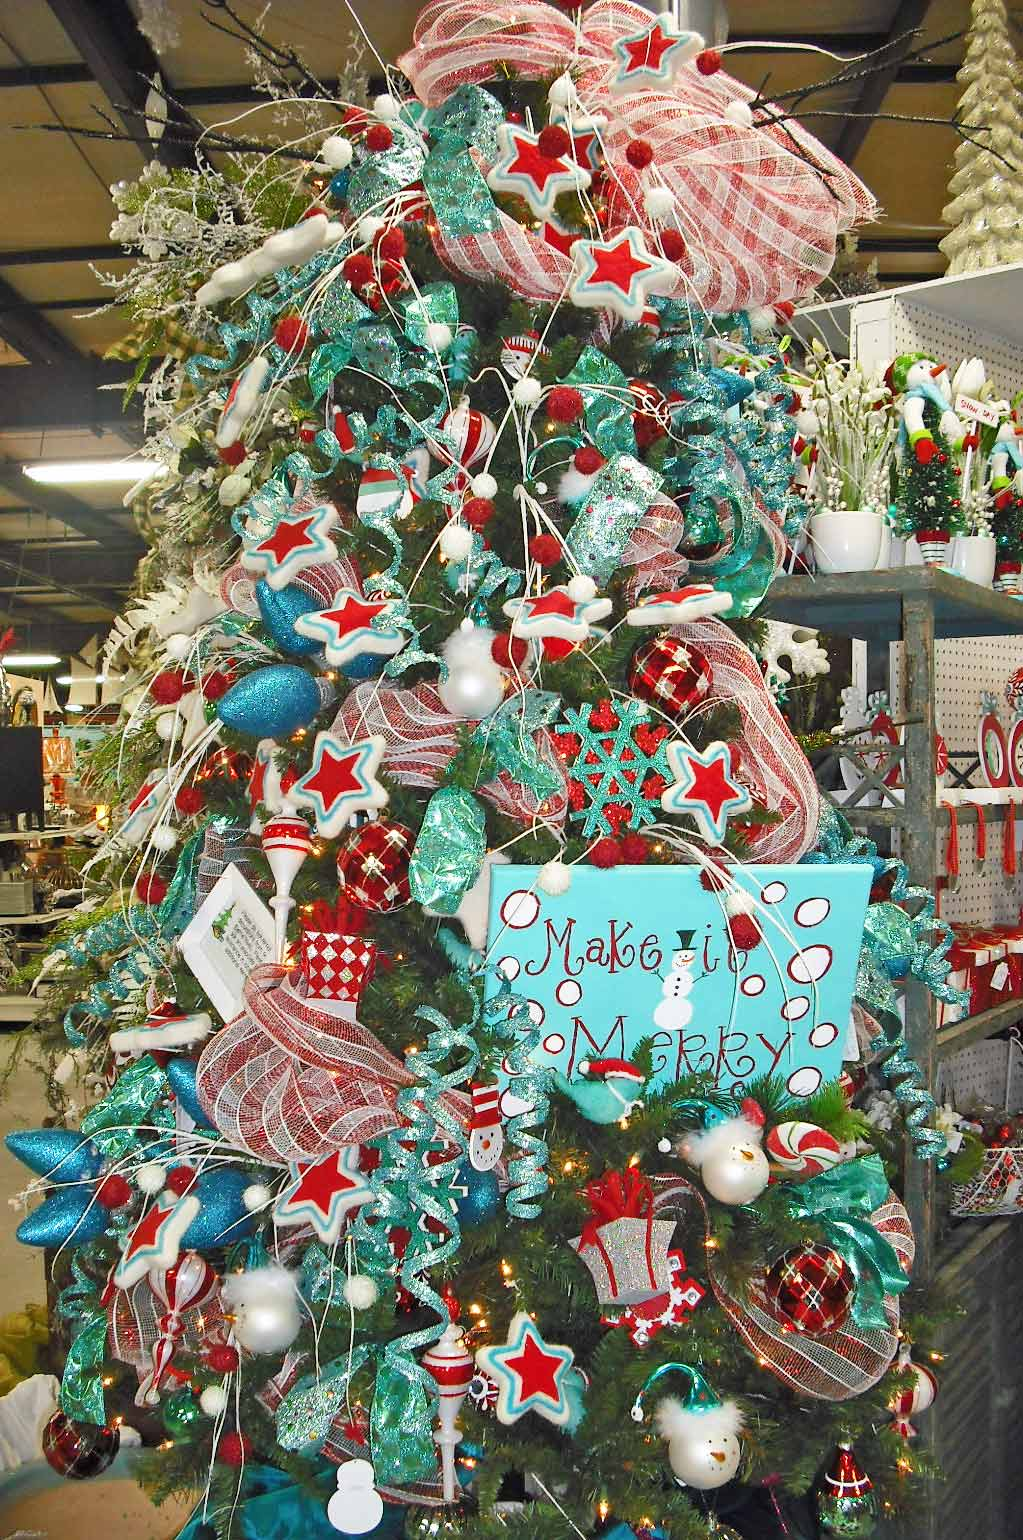 Studio b uberart twelve days of christmas trees day 4 for 12 days of christmas decoration theme